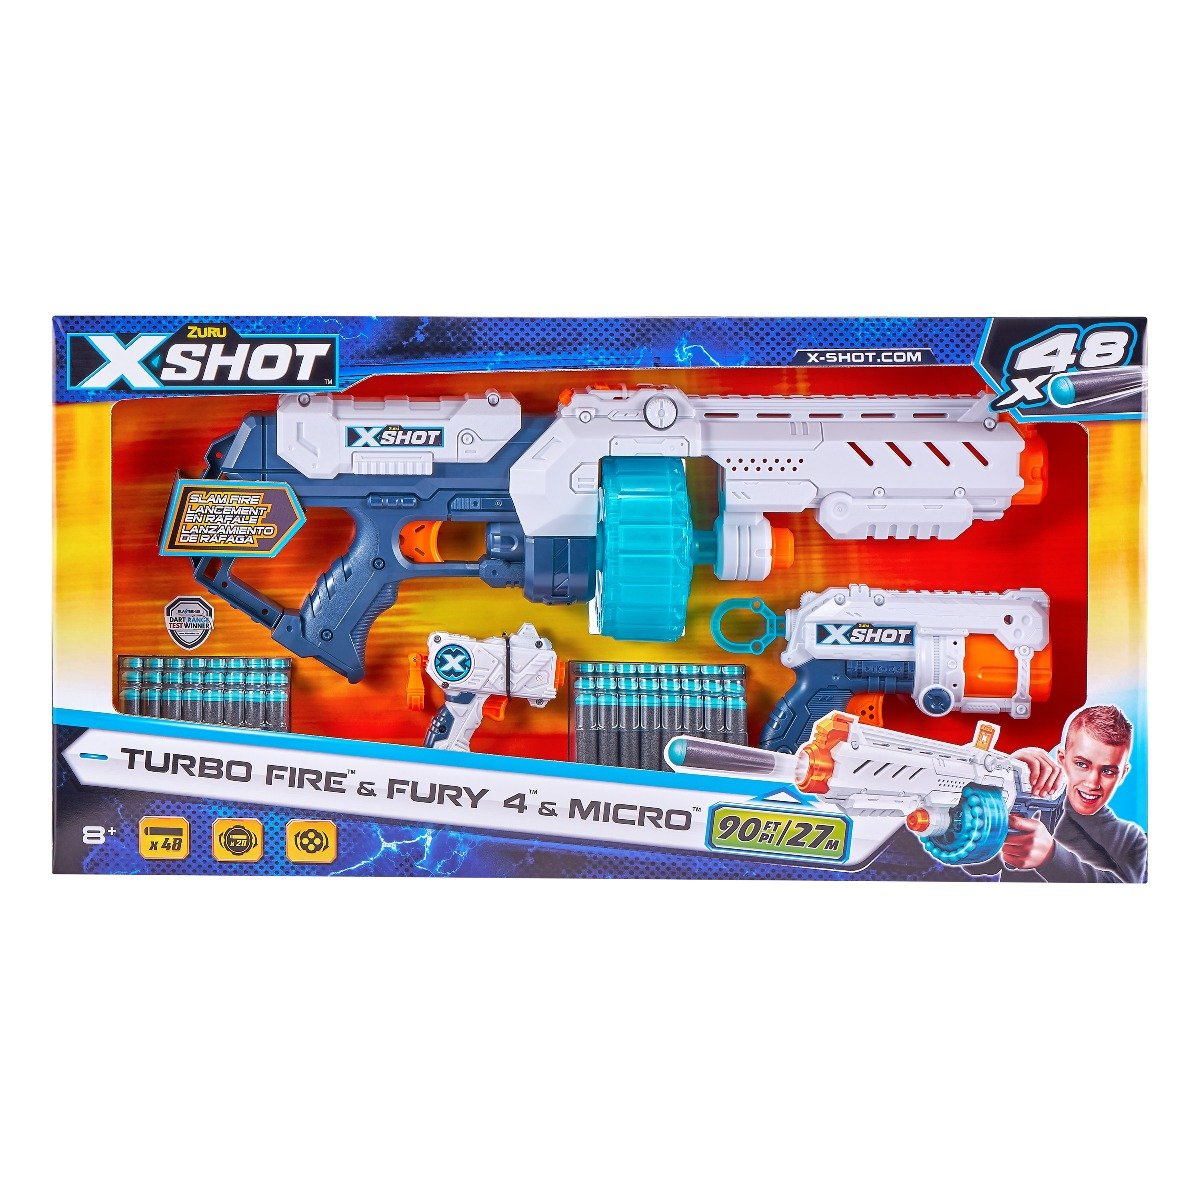 Blaster X-Shot Combo Pack Turbo Fire Fury, 48 proiectile